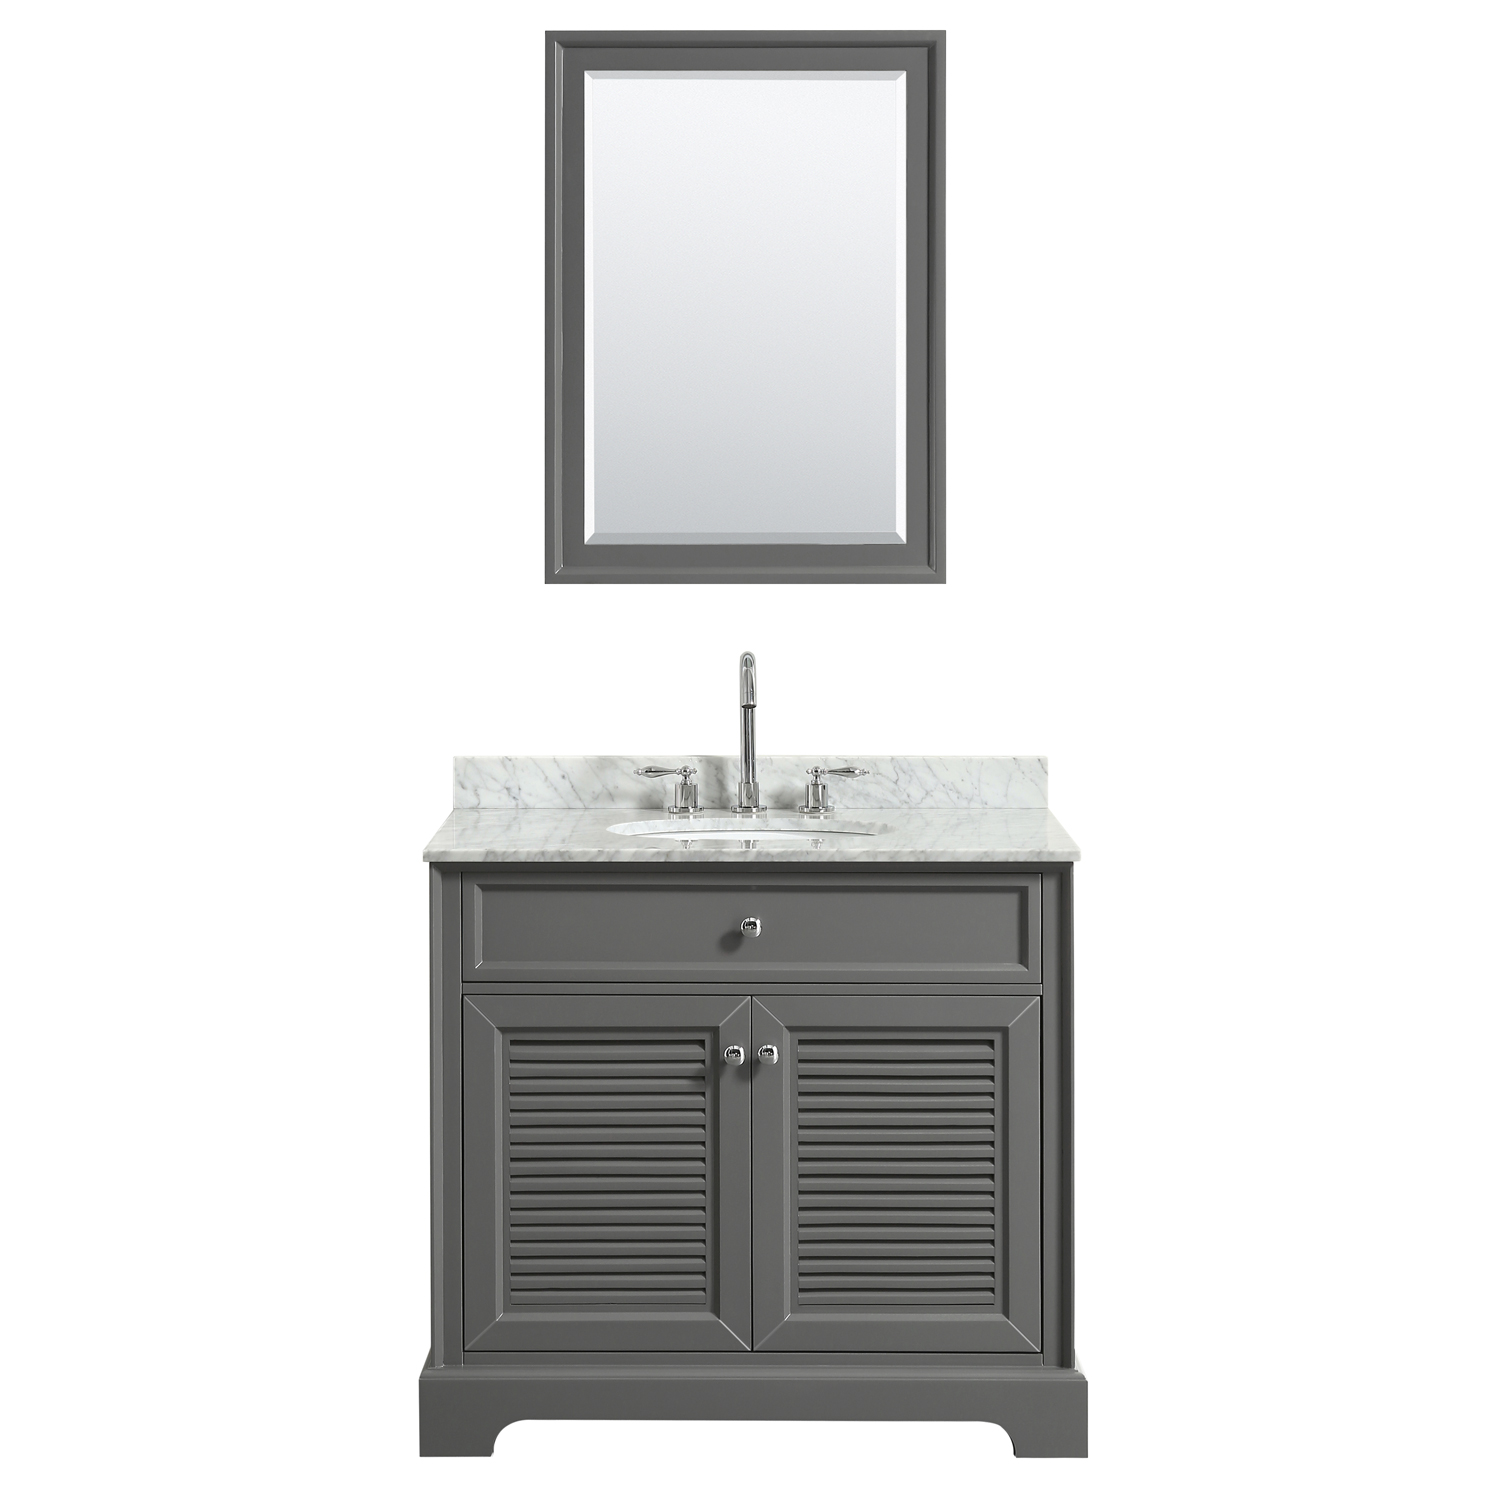 "36"" Single Bathroom Vanity in Dark Gray, White Carrara Marble Countertop, Undermount Oval Sink, and Mirror Options"